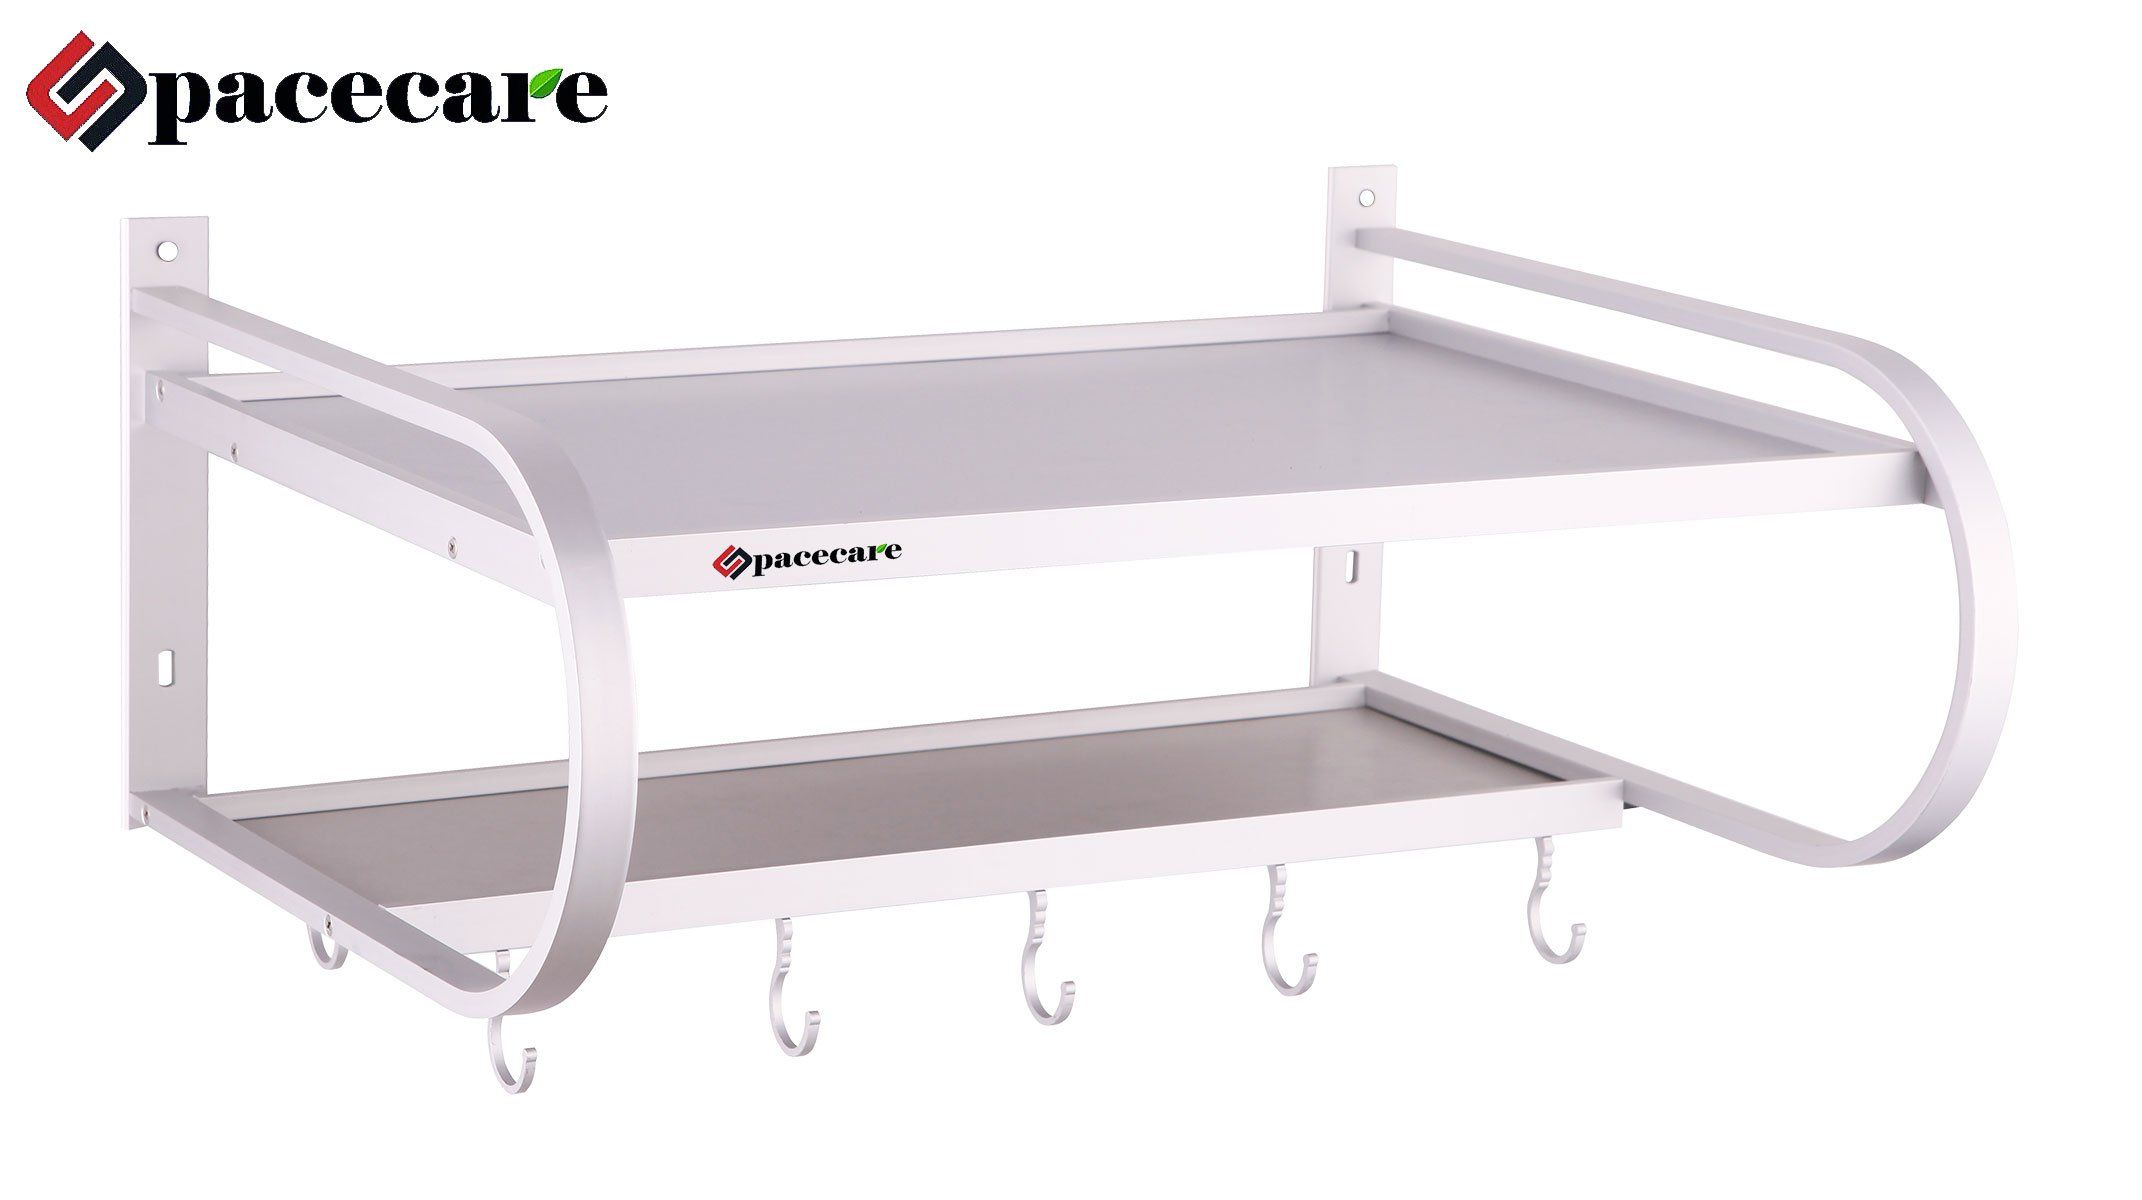 Spacecare Double Bracket Alumimum Microwave Oven Wall Mount Shelf